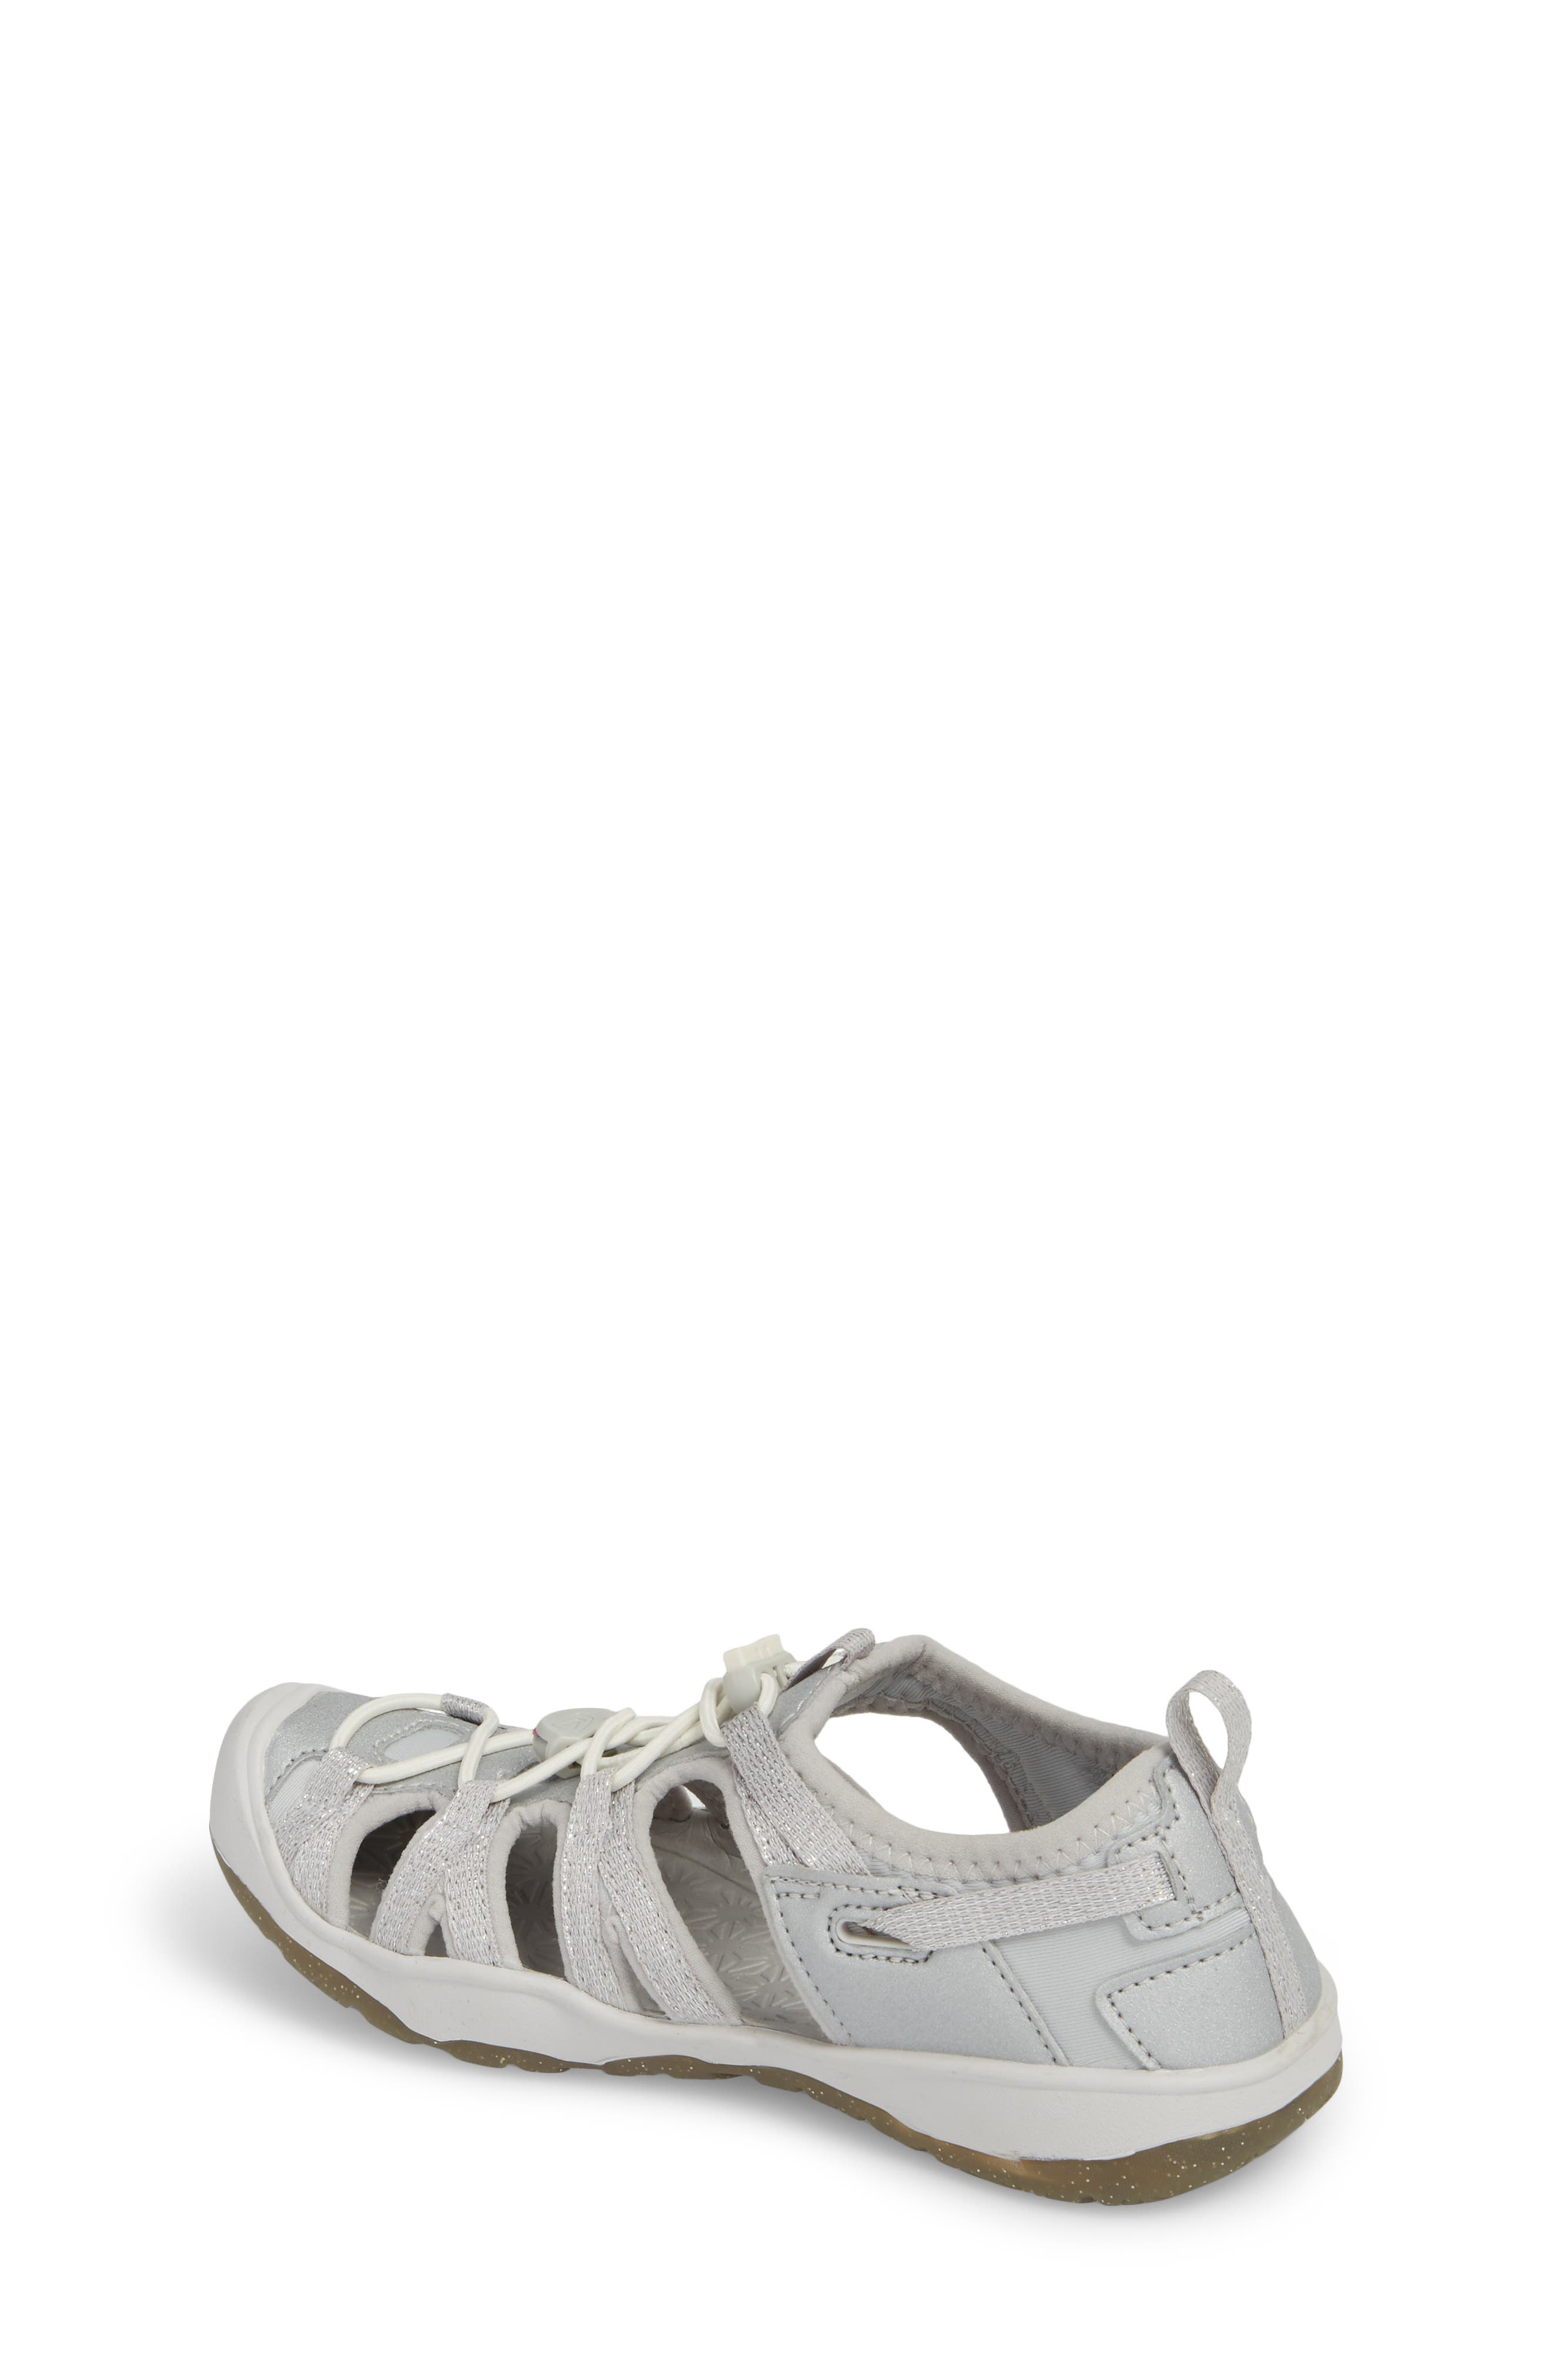 KEEN, Moxie Water Friendly Sandal, Alternate thumbnail 2, color, SILVER